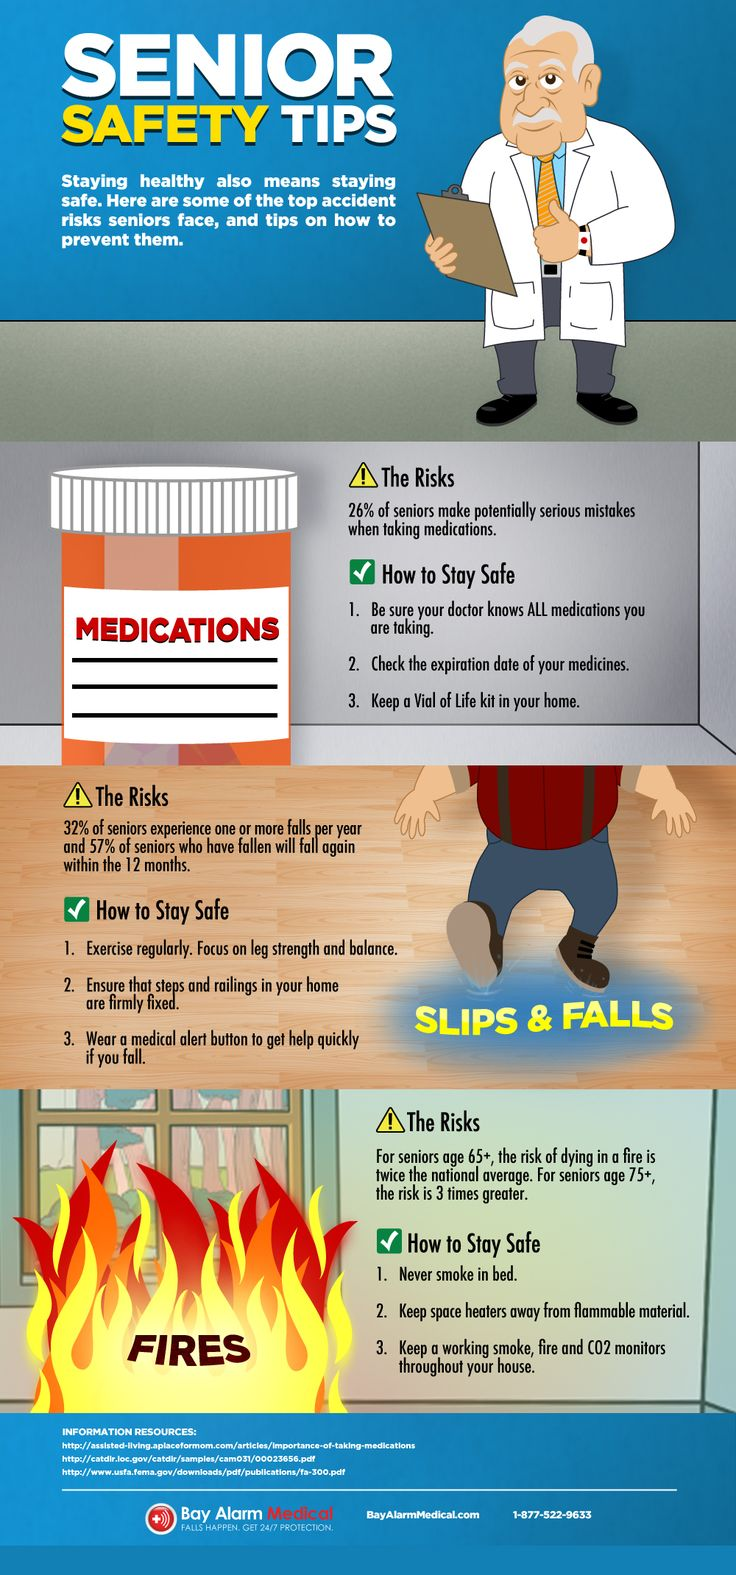 25 Best Ideas About Safety Tips On Pinterest Noble And